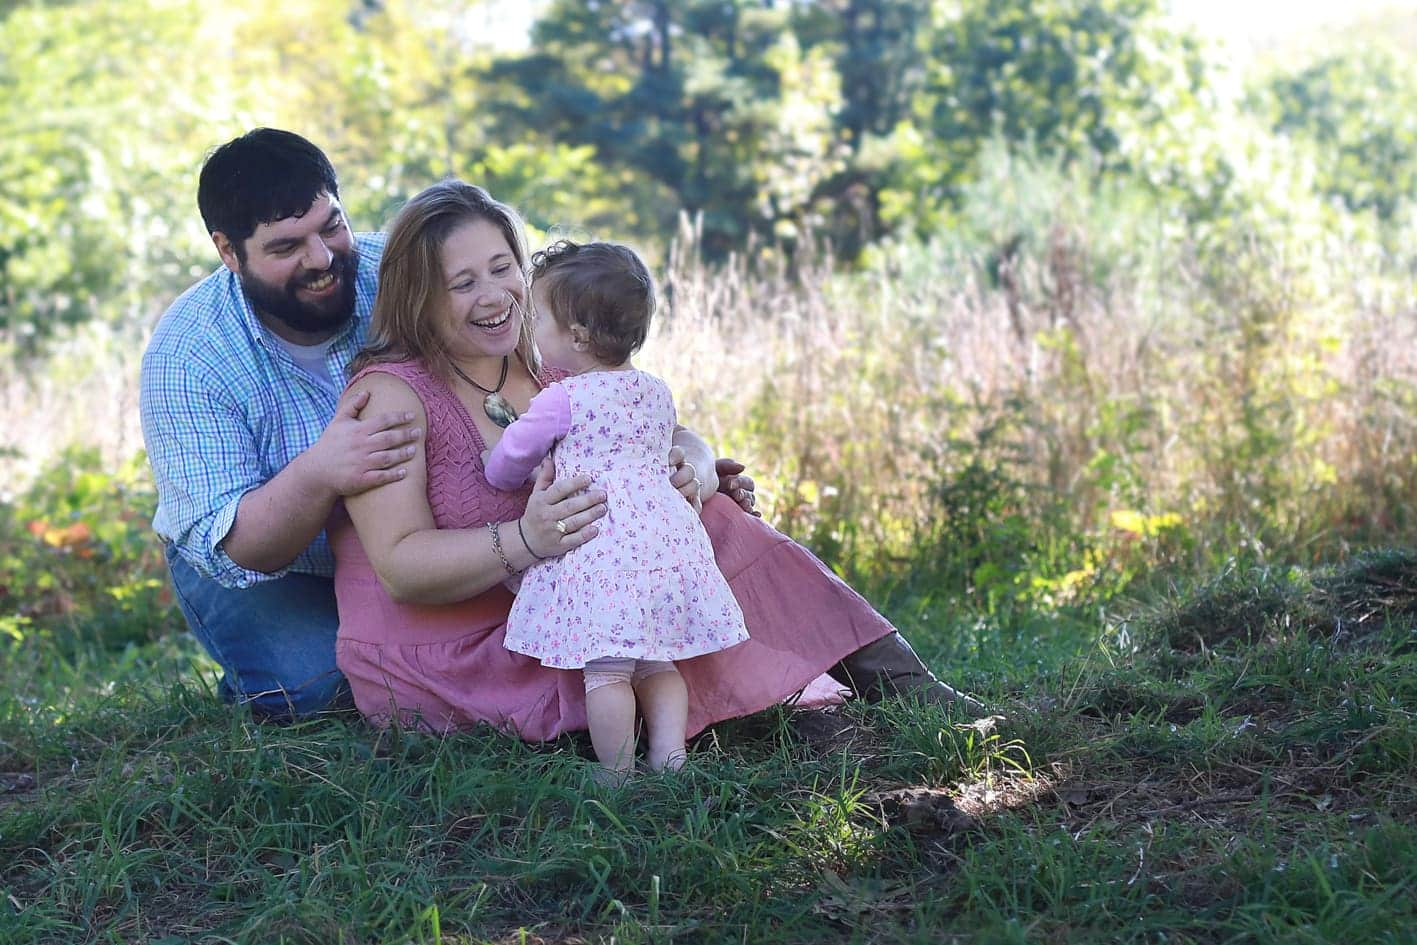 Mom and dad and baby looking at each other in an open field. Mom holding onto toddlers waist